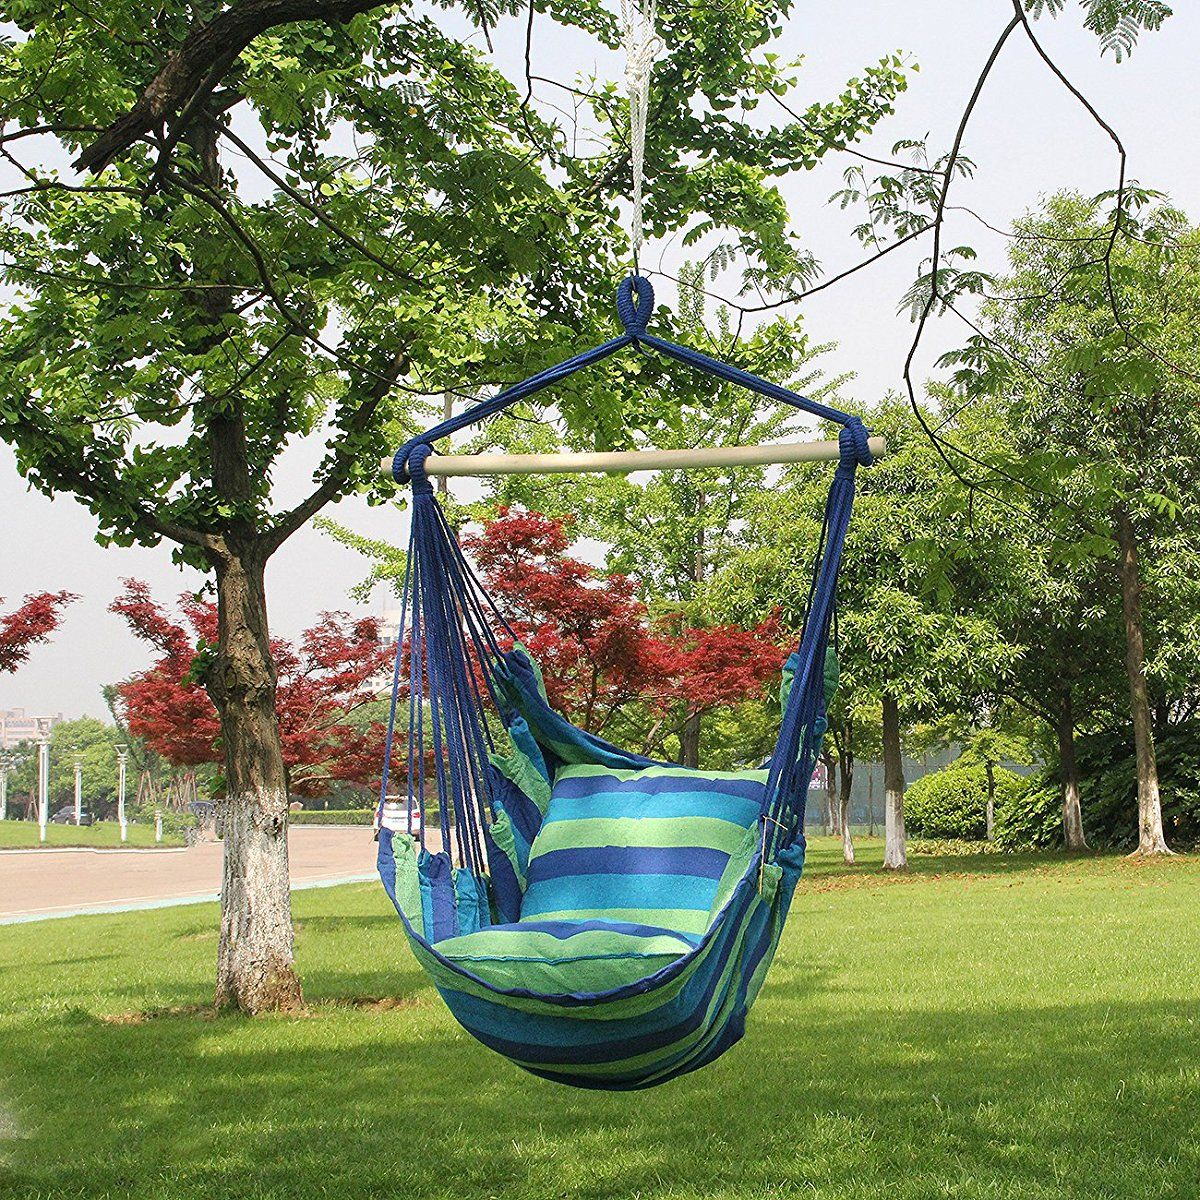 Sorbus Hanging Rope Hammock Chair Swing Seat For Any Indoor Or Outdoor Spaces Max 265 Lbs 2 Seat Cushions Included Hammock Swing Chair Hanging Hammock Chair Rope Hammock Chair